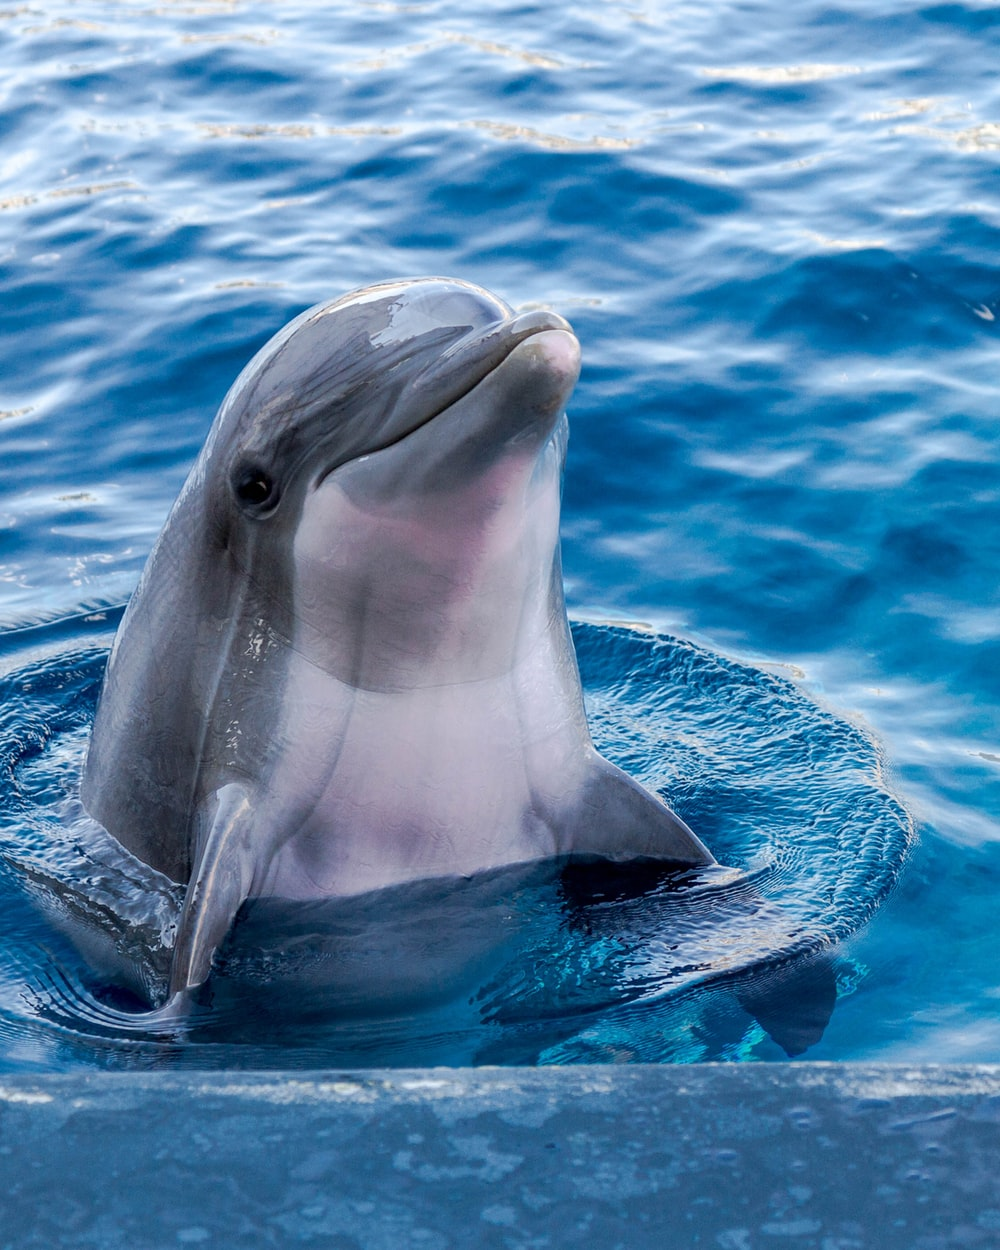 Dolphin Wallpapers Free Hd Download 500 Hq Unsplash